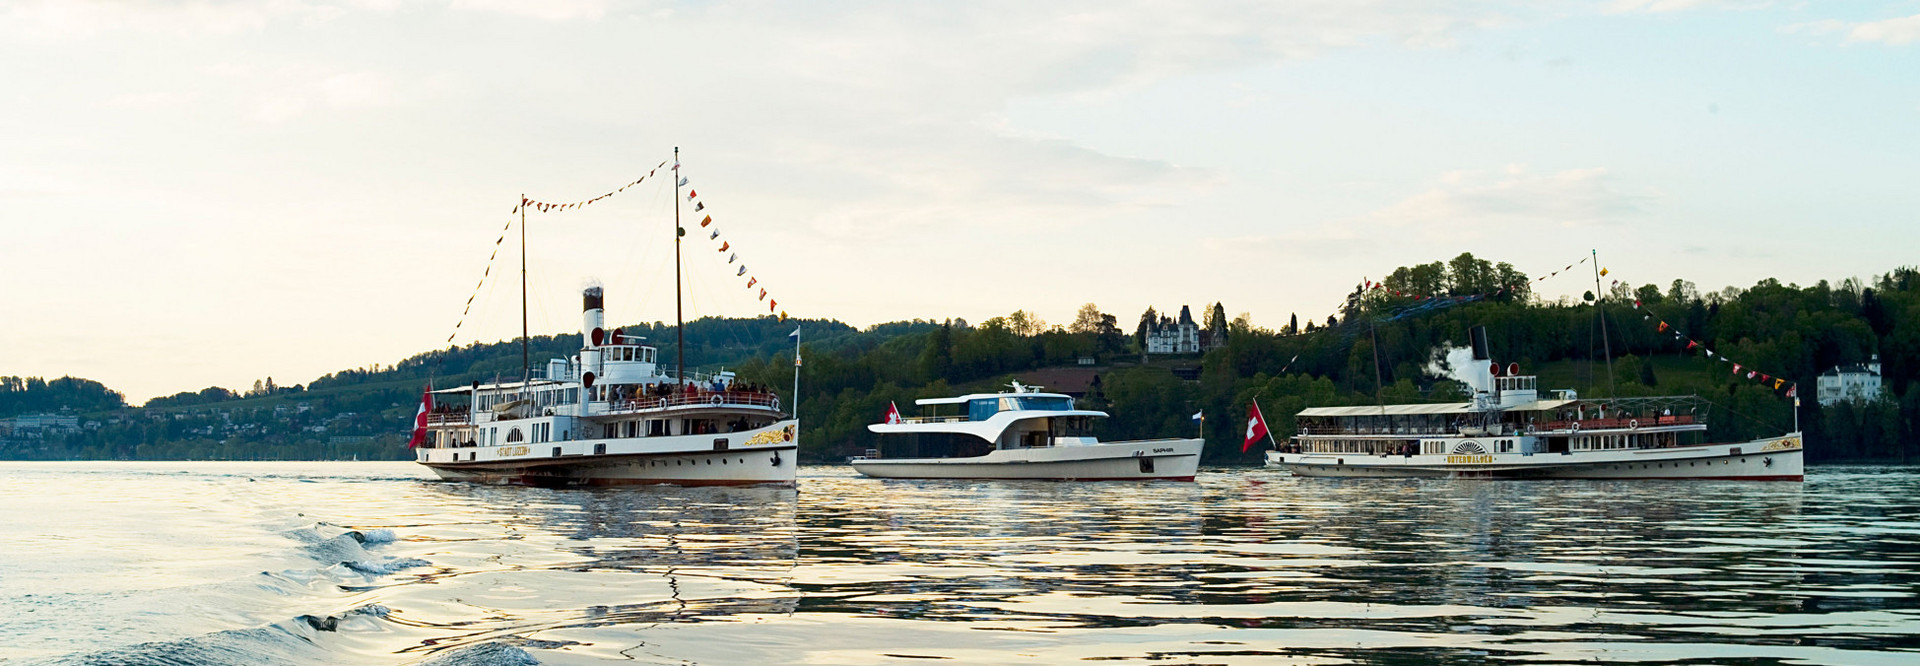 Two steamboats and a motor vessel cruise side by side on Lake Lucerne.